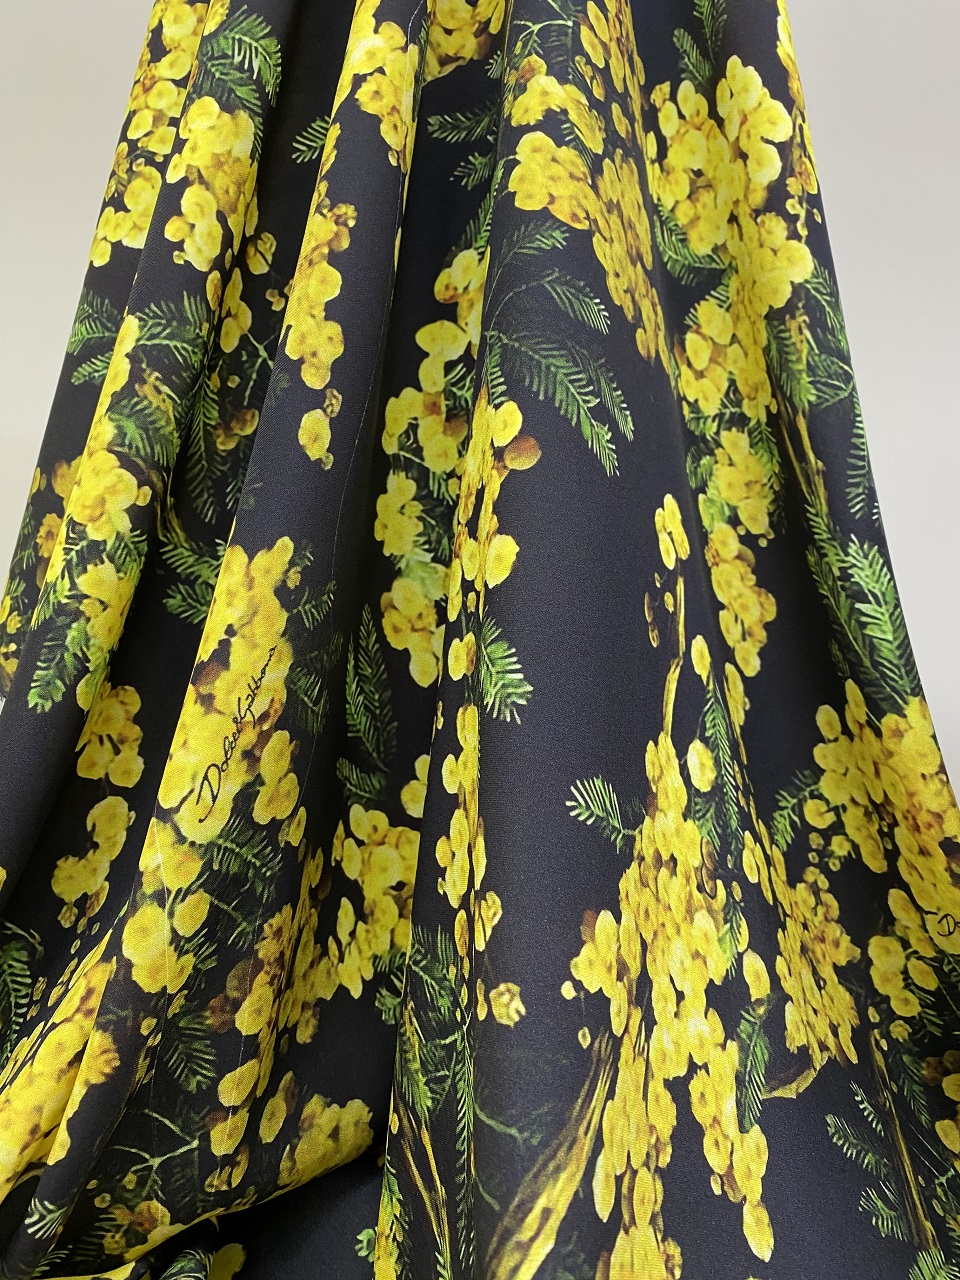 silk fabric with yellow print